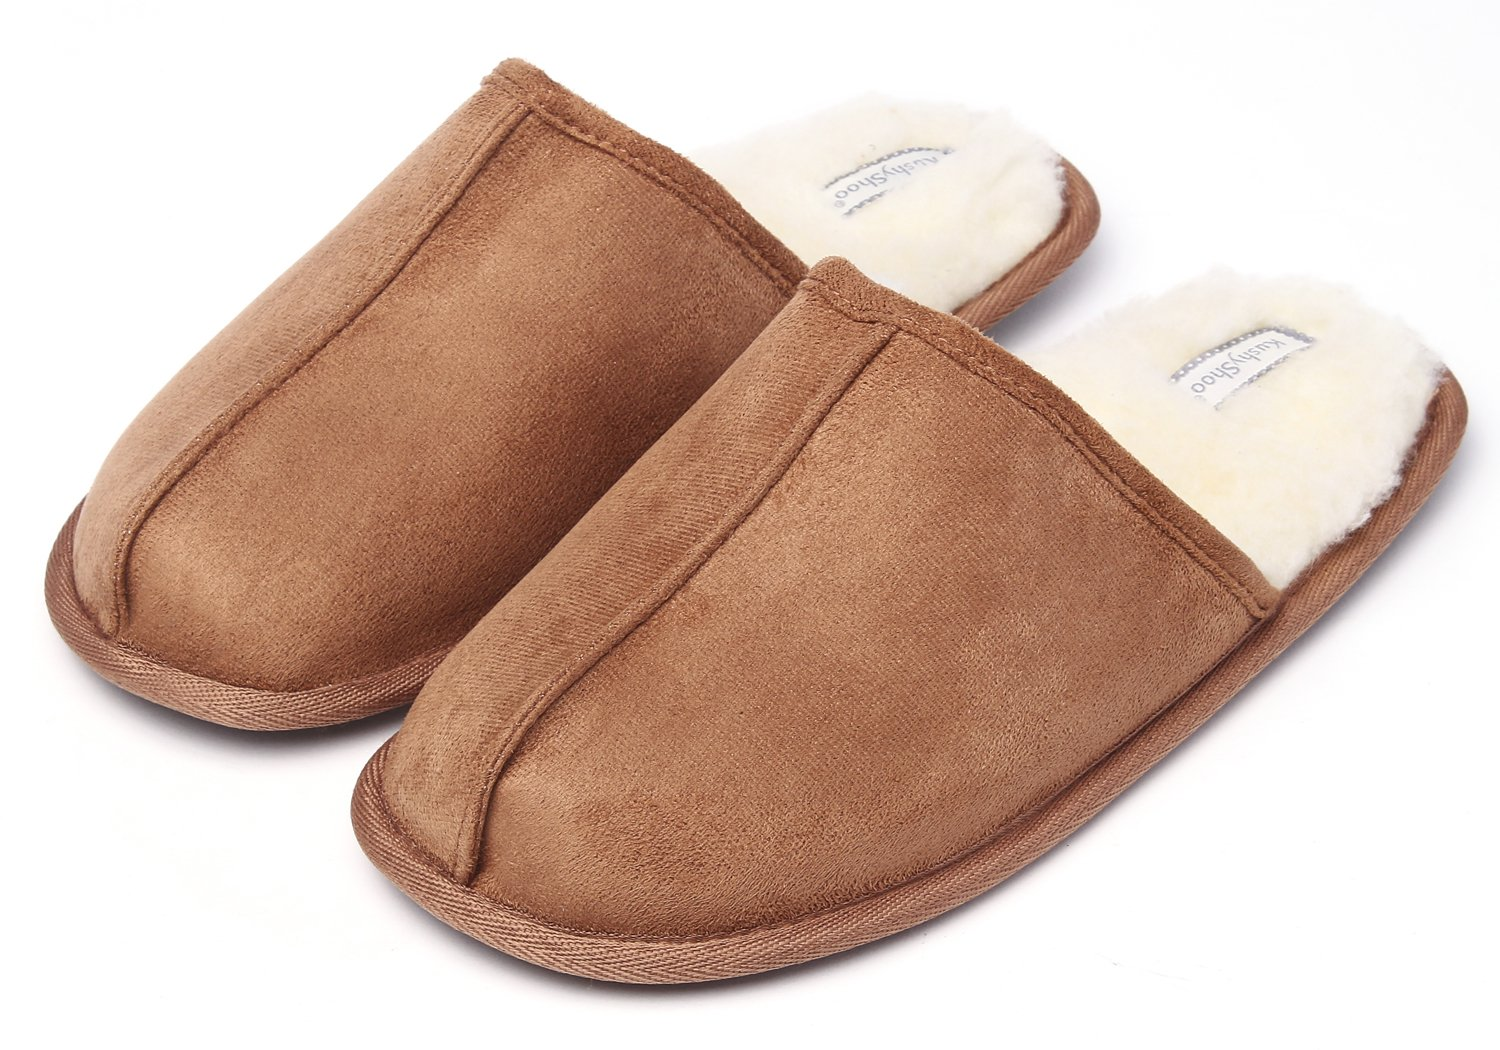 KushyShoo Men's Slip-On Indoor Outdoor Scuff Fluff Slippers by KushyShoo